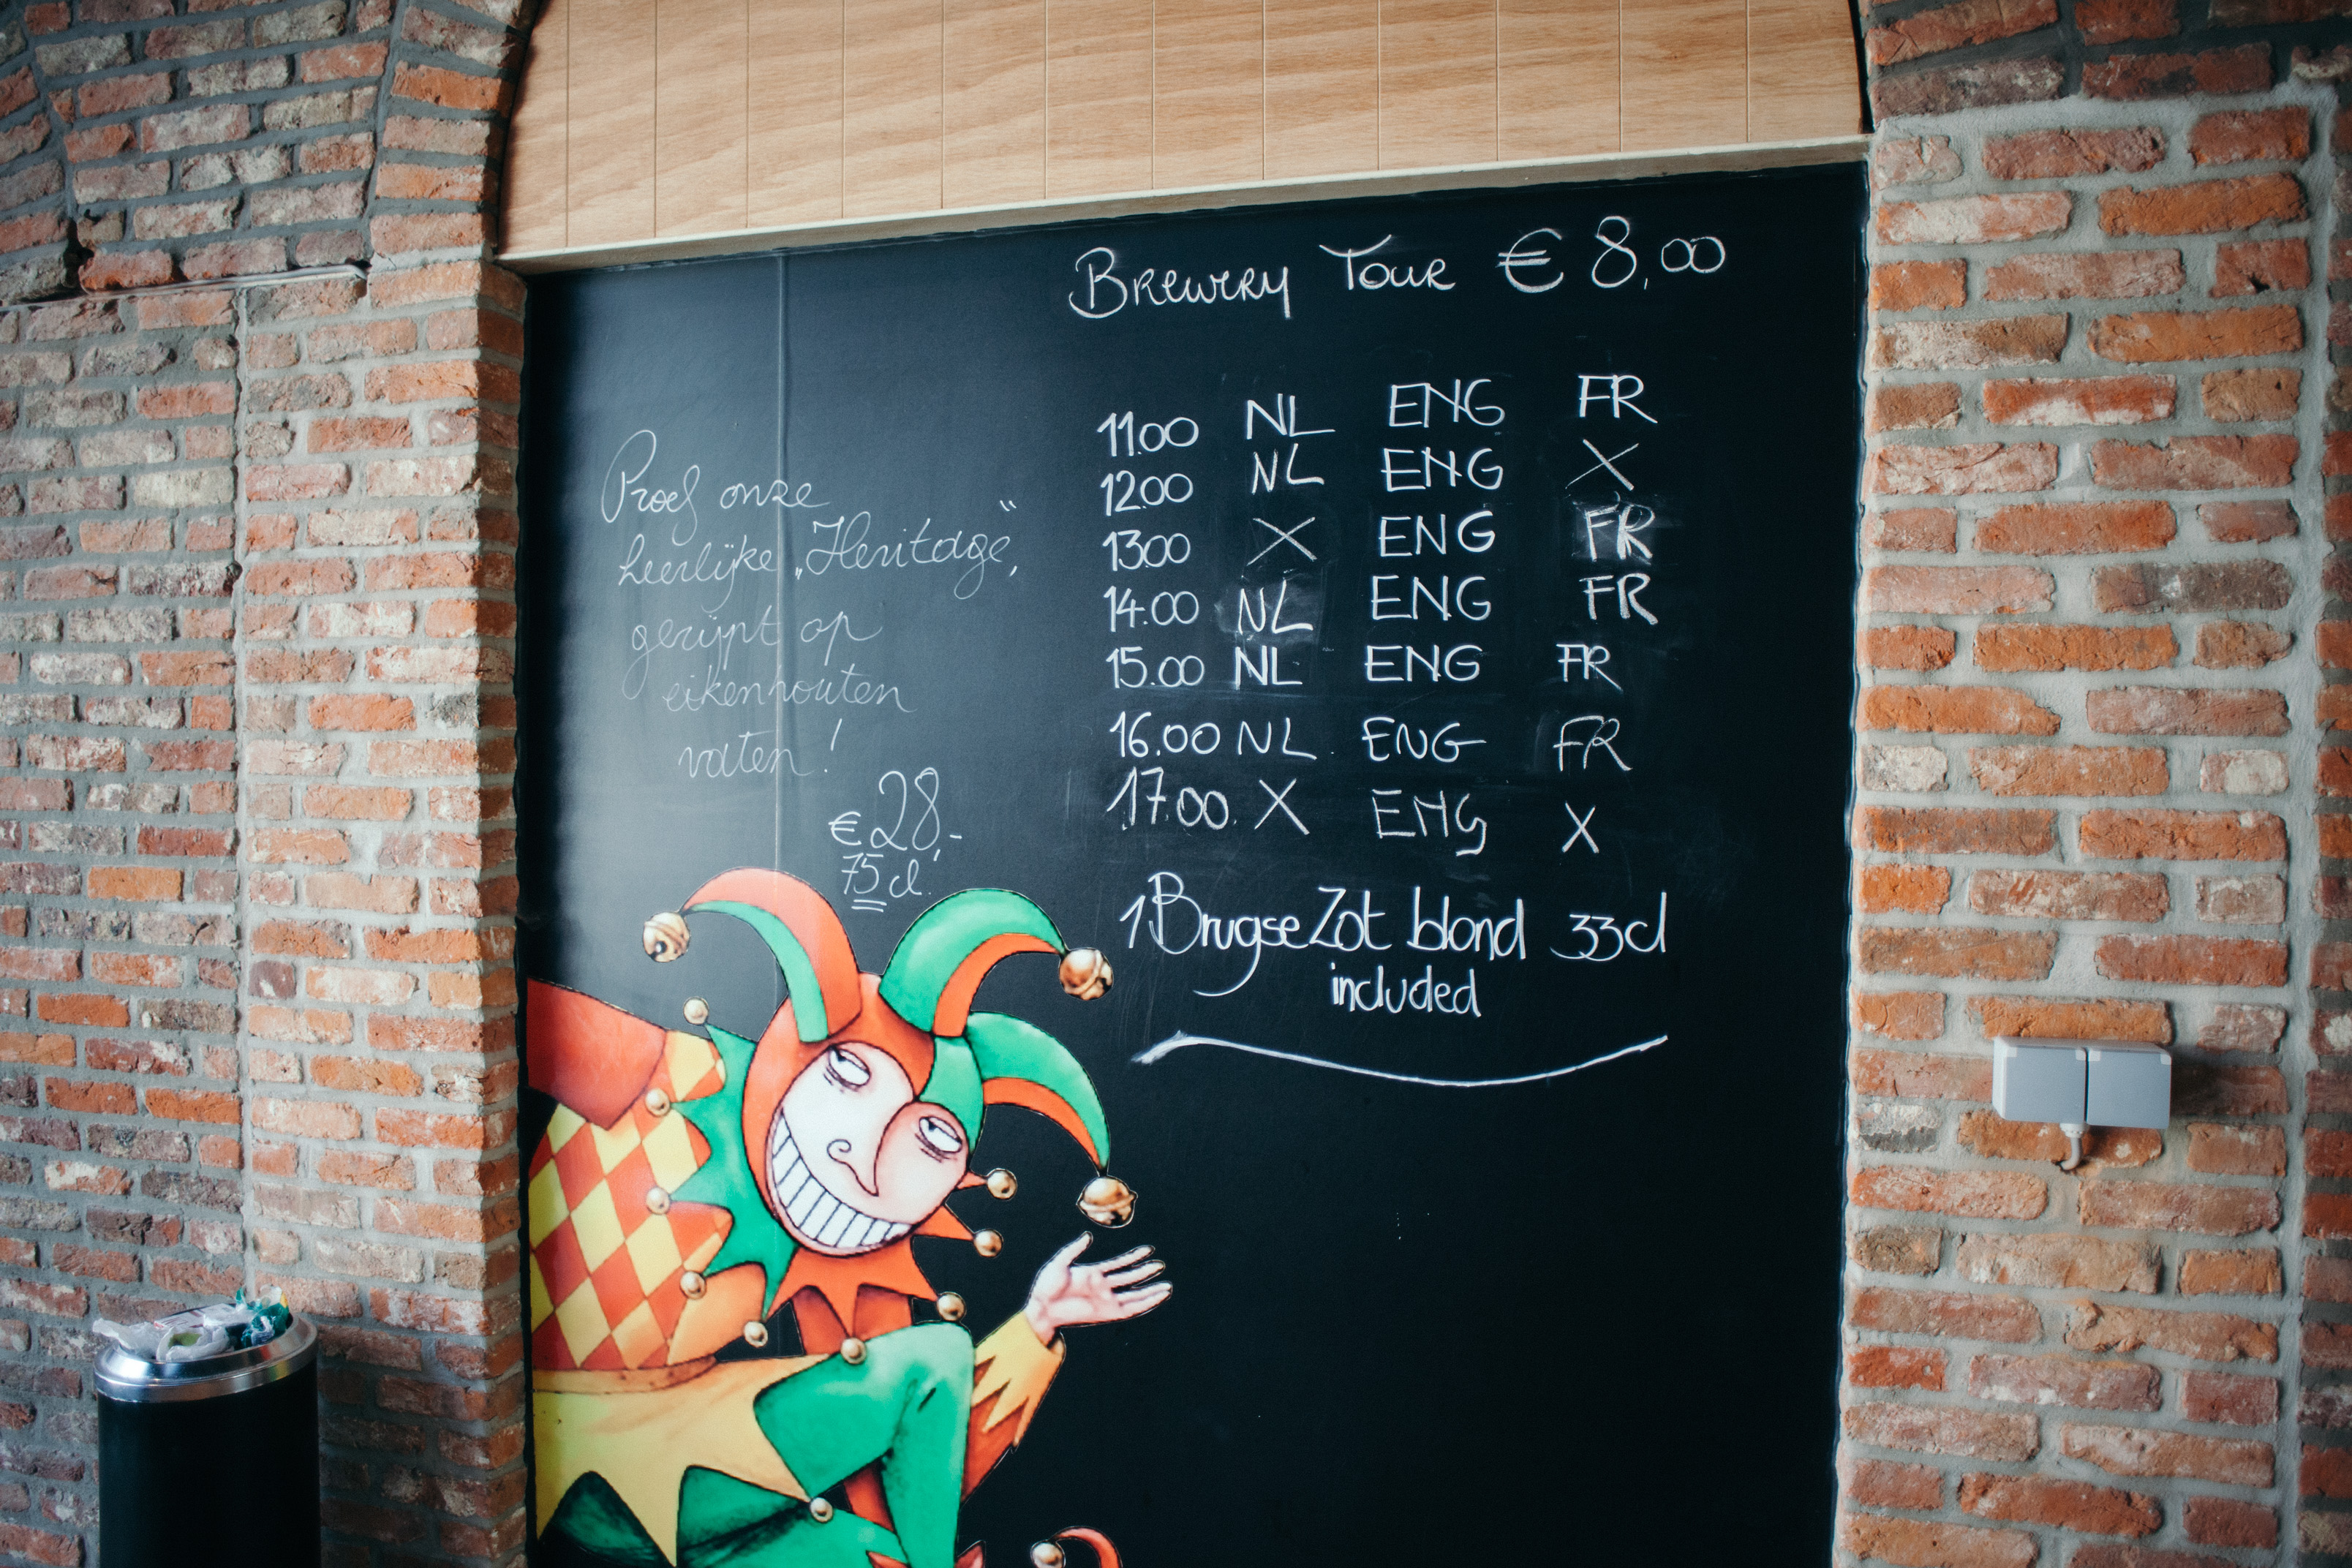 Brewery De Halve Maan tour sign